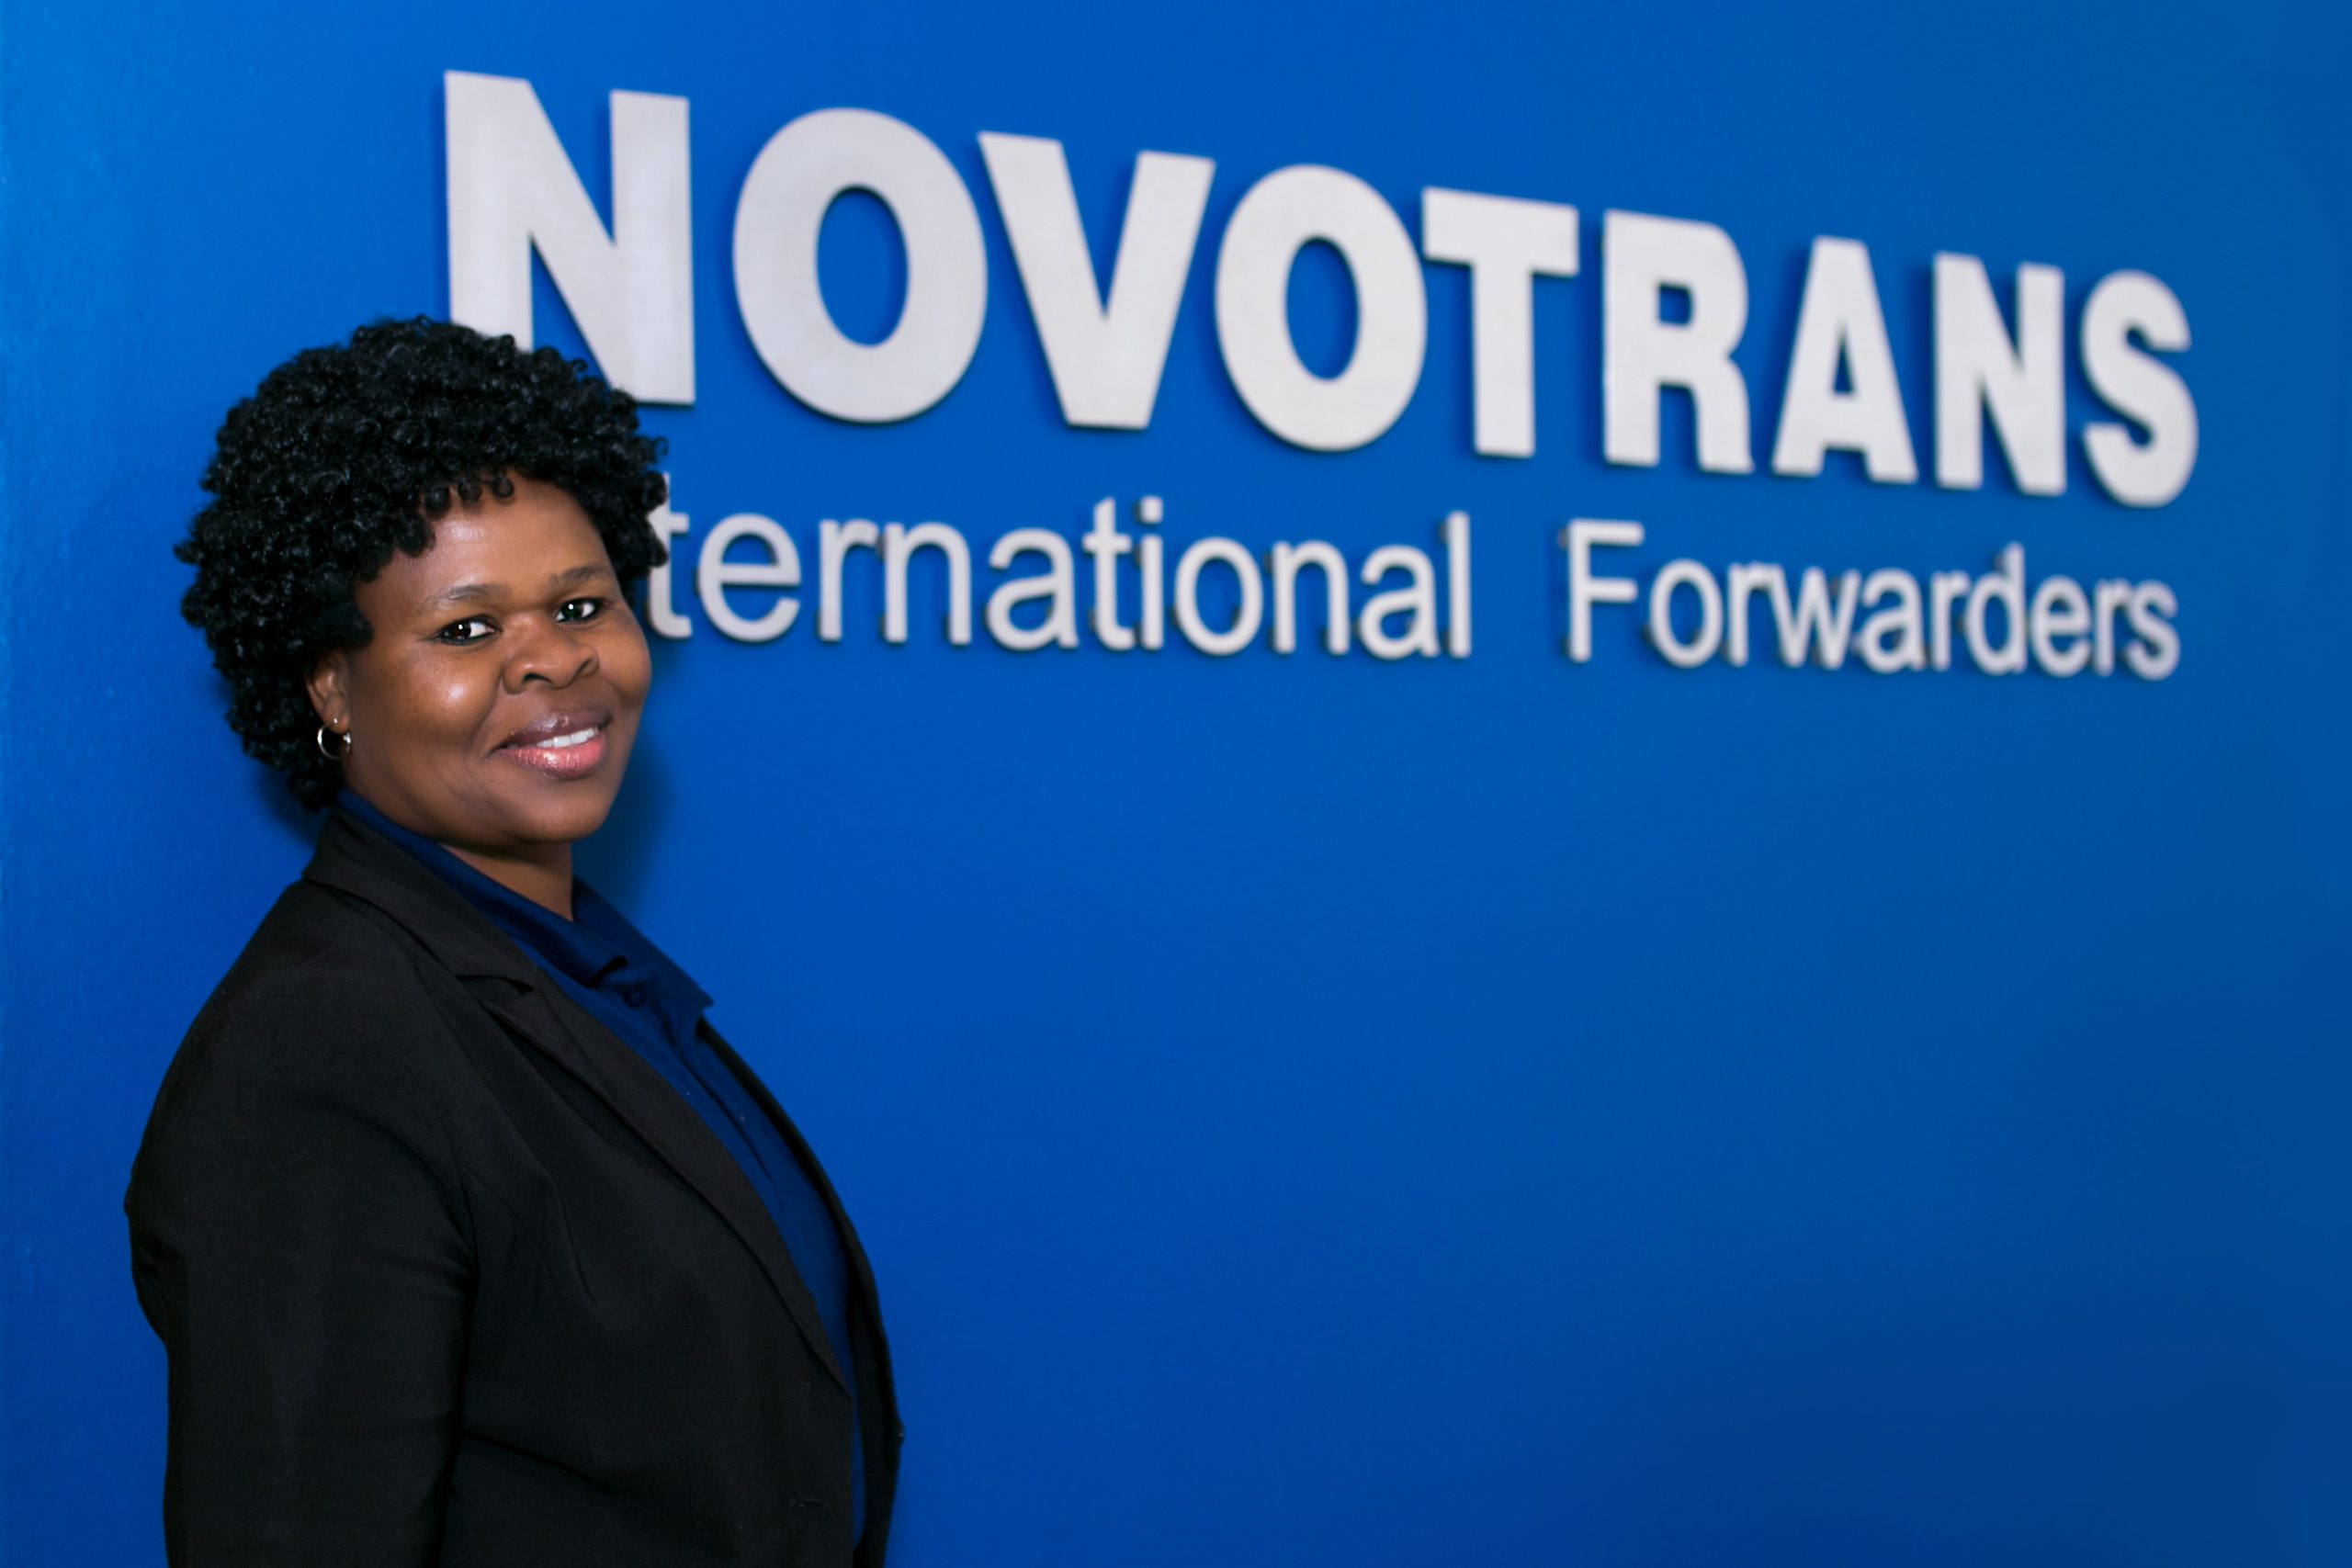 Novotrans Freight Forwarding